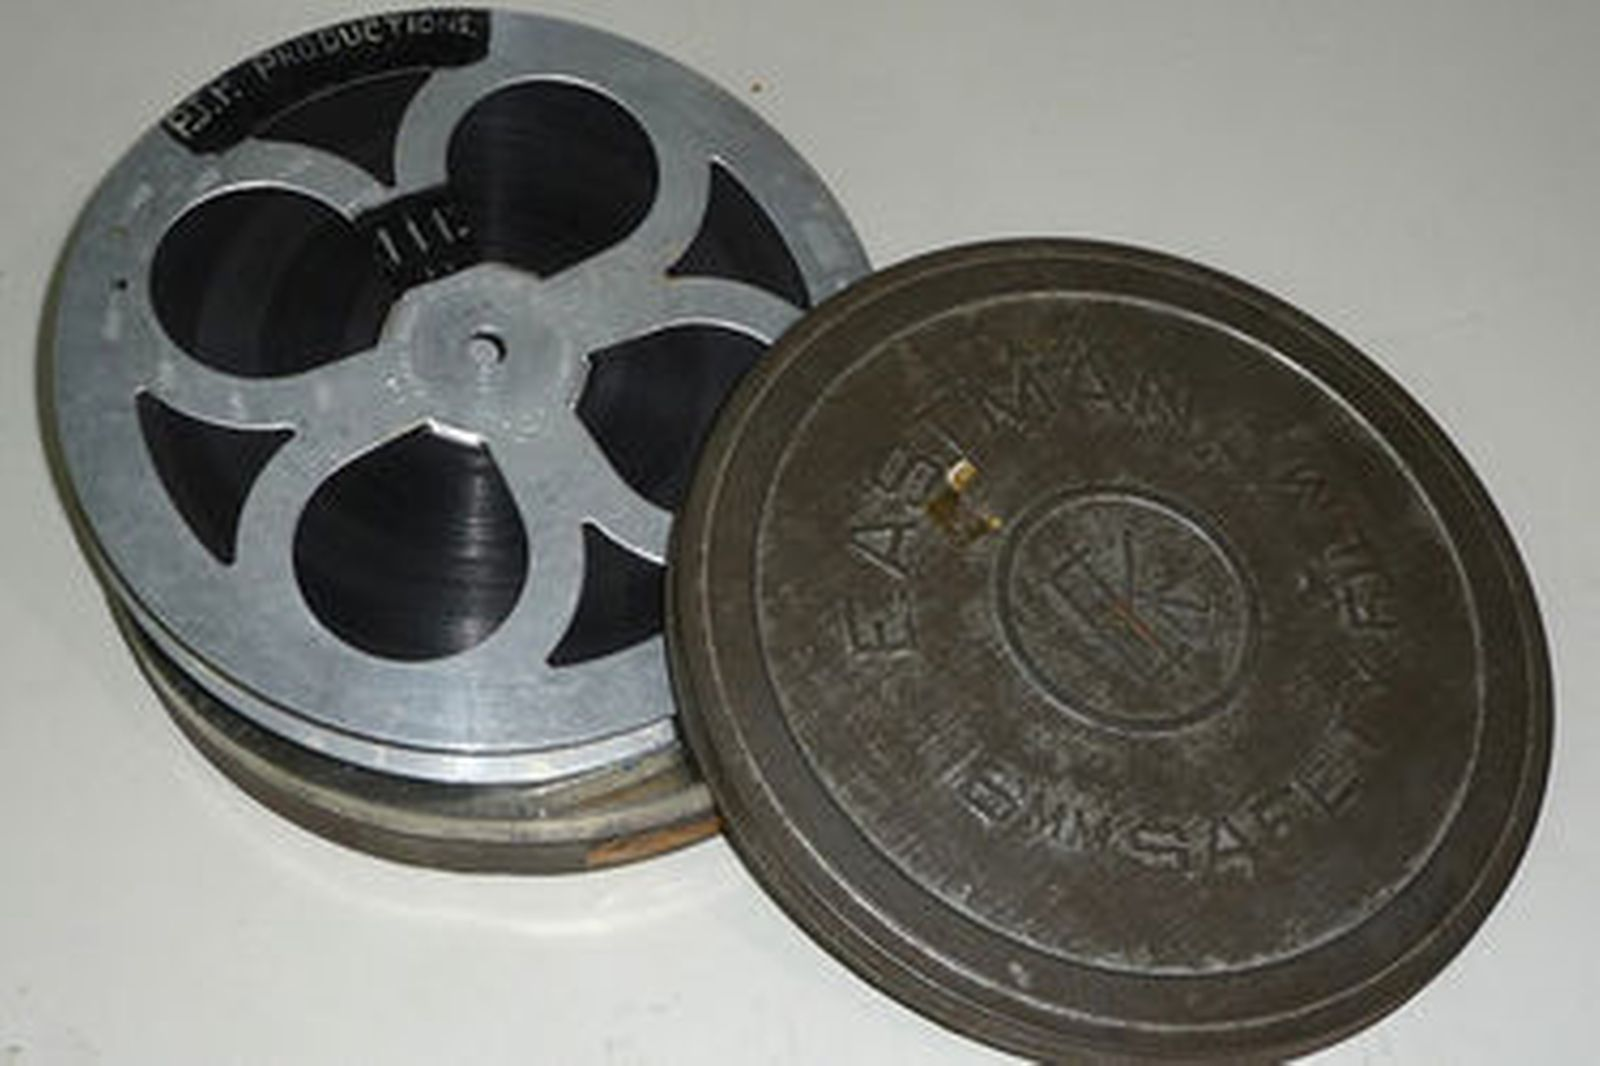 16mm Film - 1948 Silent film of first 48-215 off Production Line (approx 5 minutes run time)